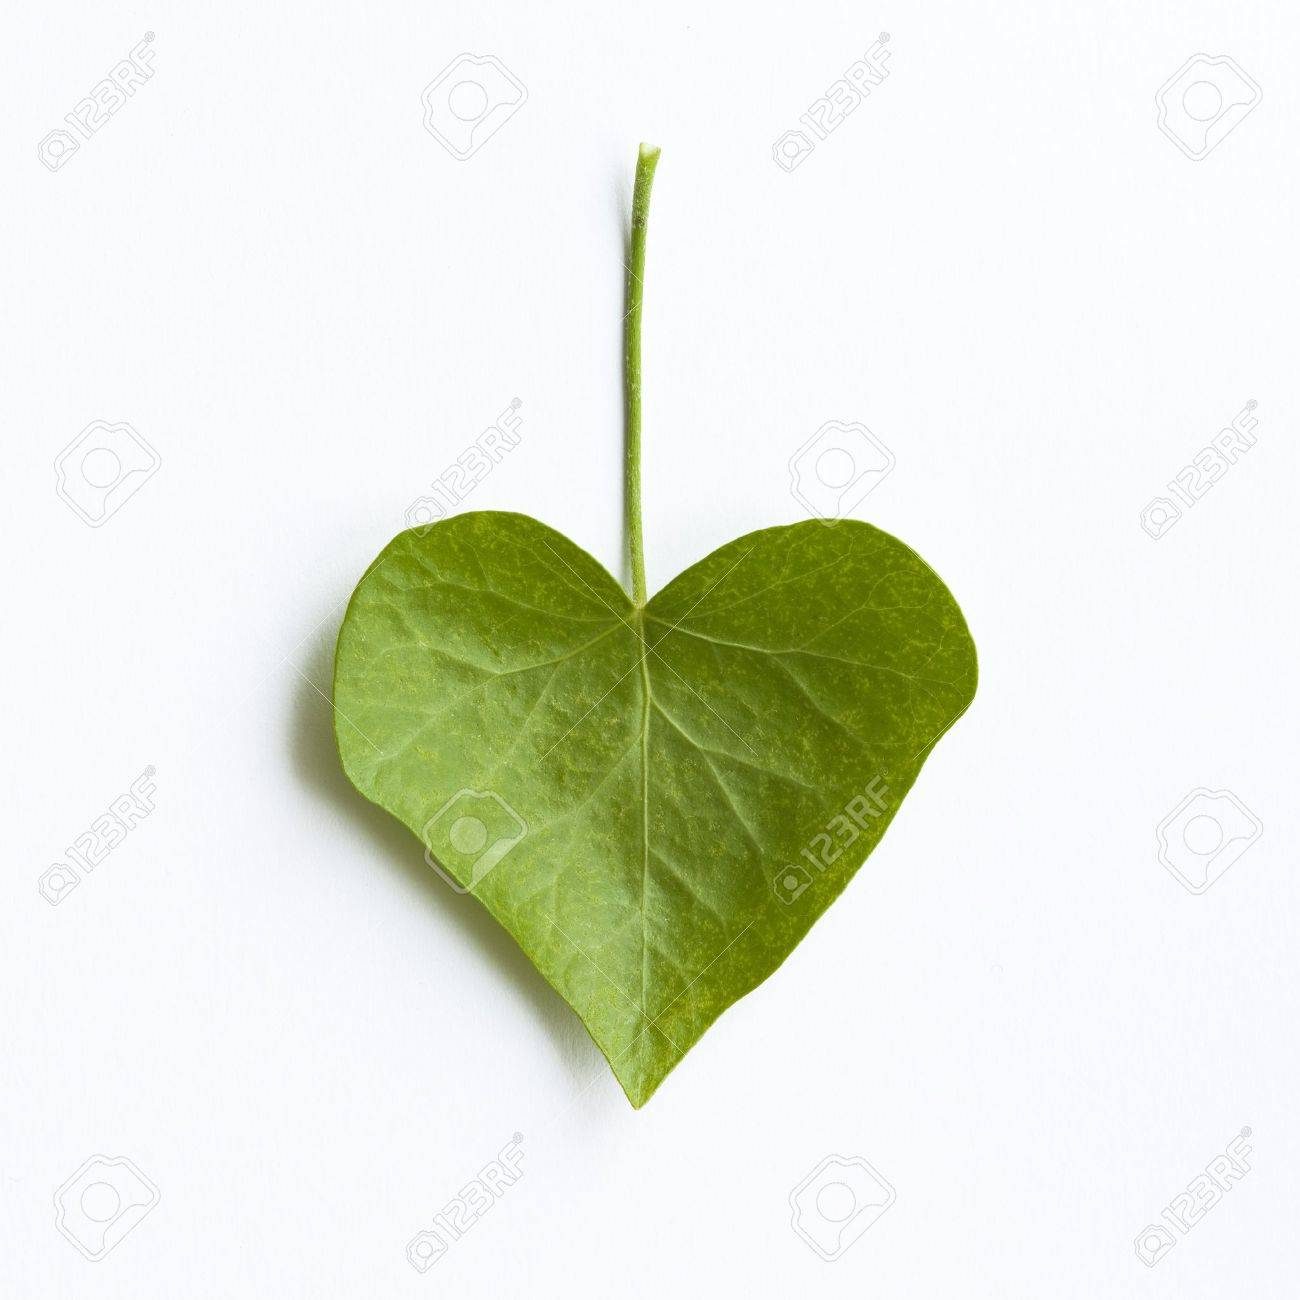 Heart-shaped ivy leaf isolated on white - 10773735